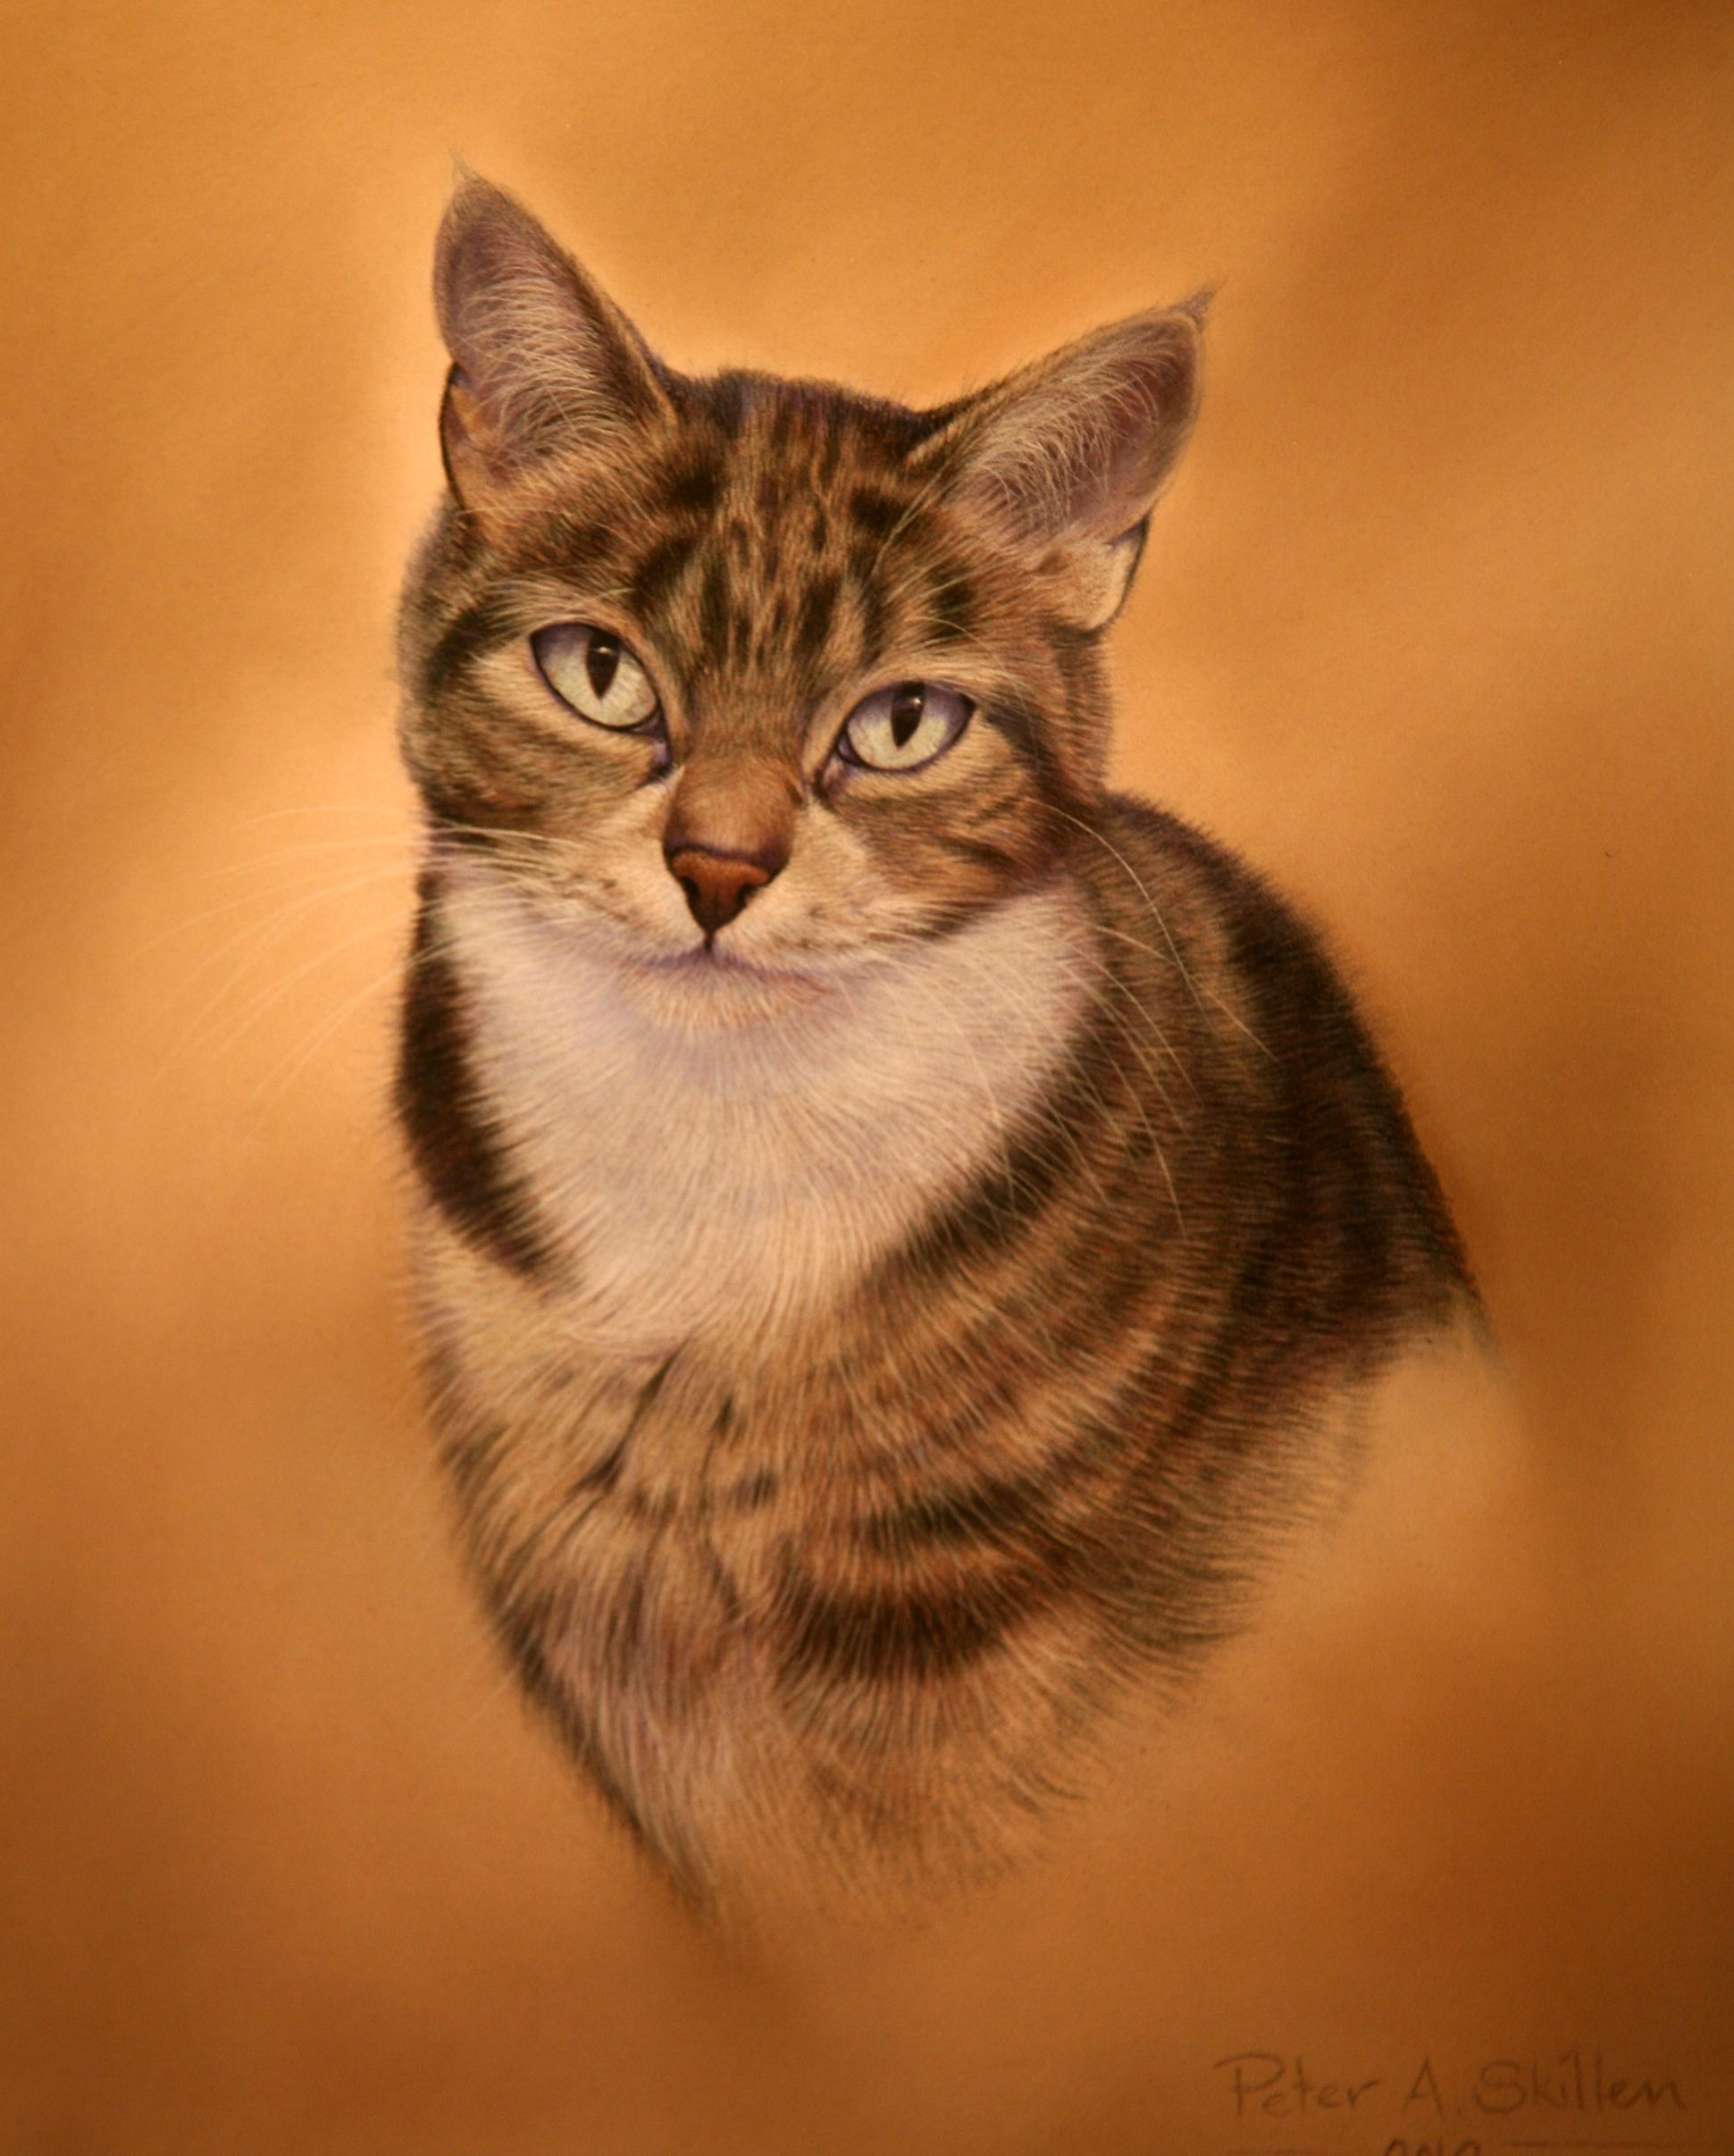 Ray`s cat  Pastel painting  Sold  Commissions undertaken